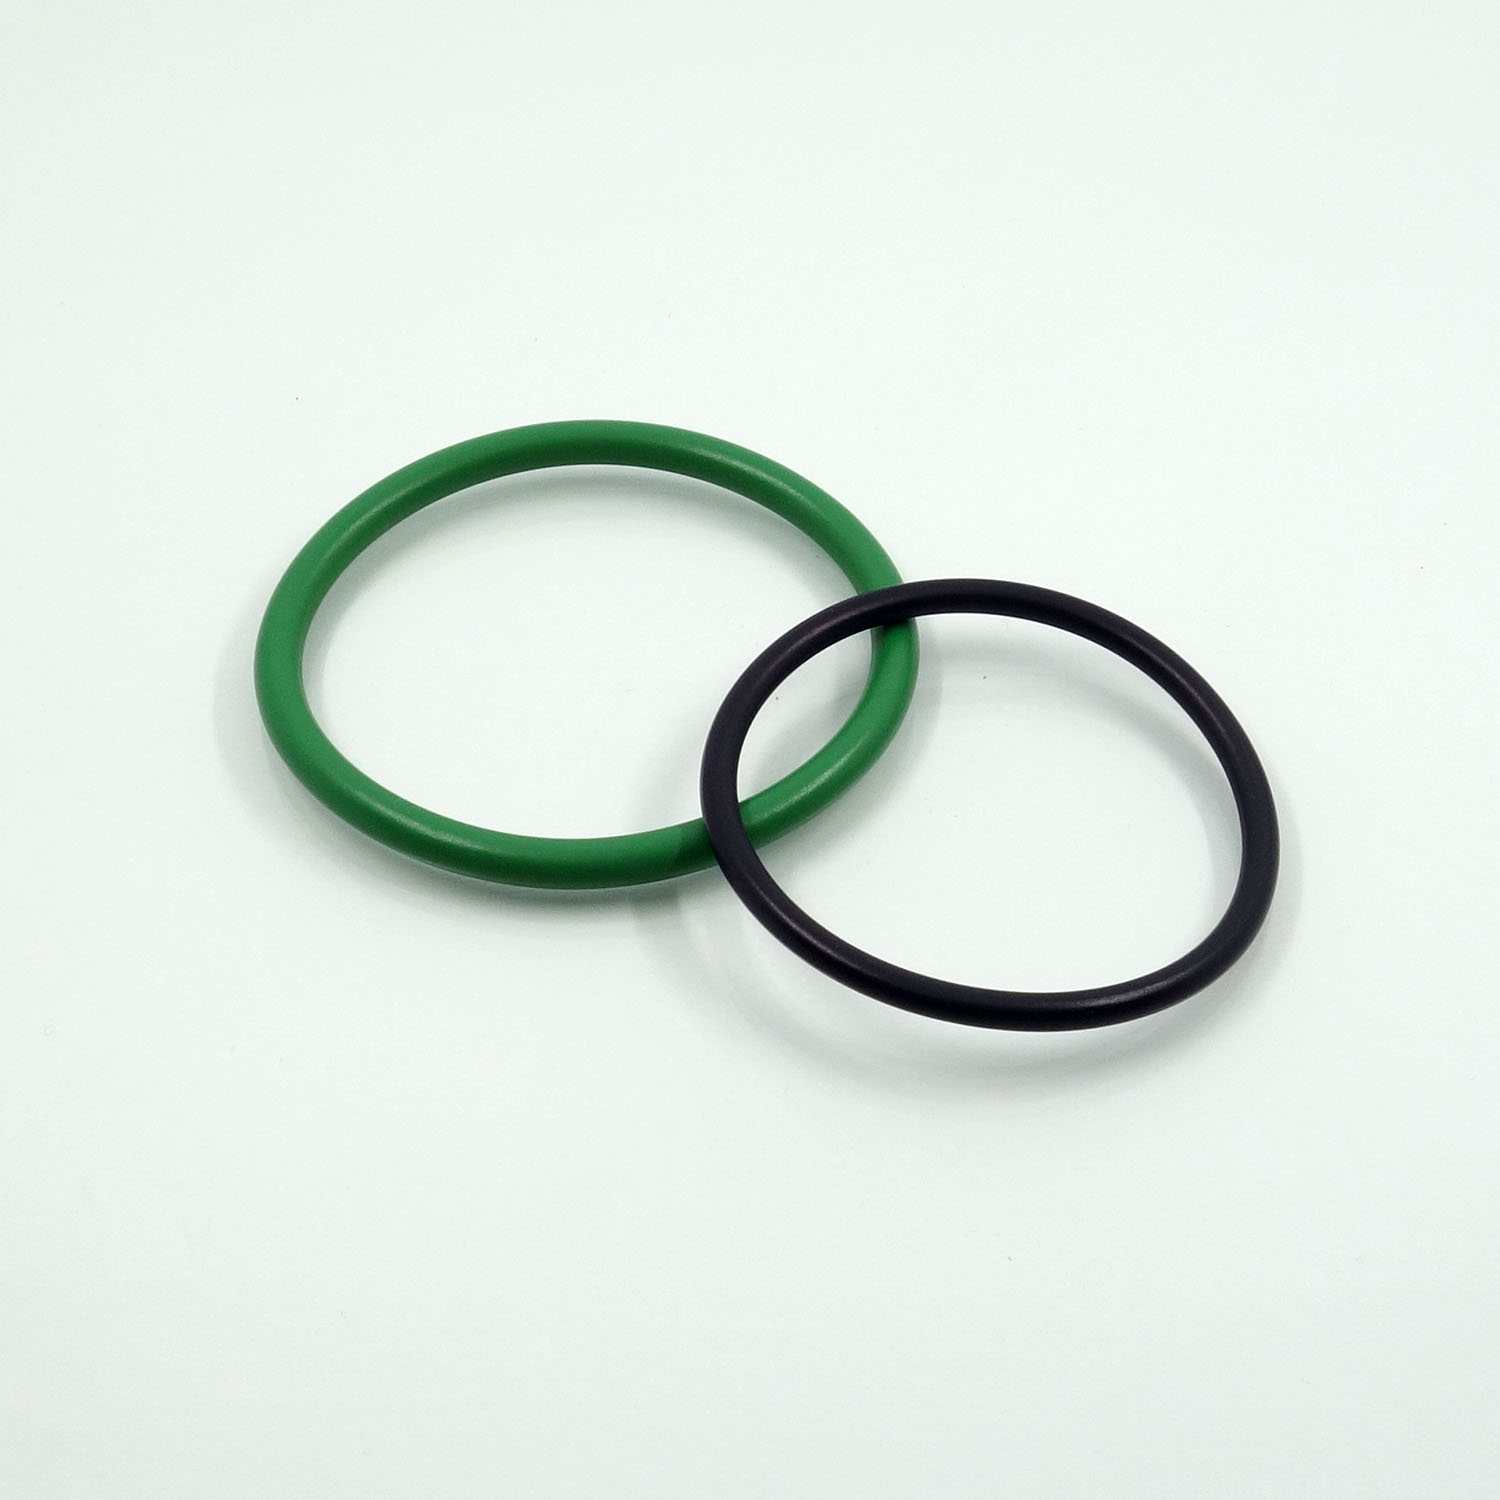 EXTERNAL O-RING SEAL KIT